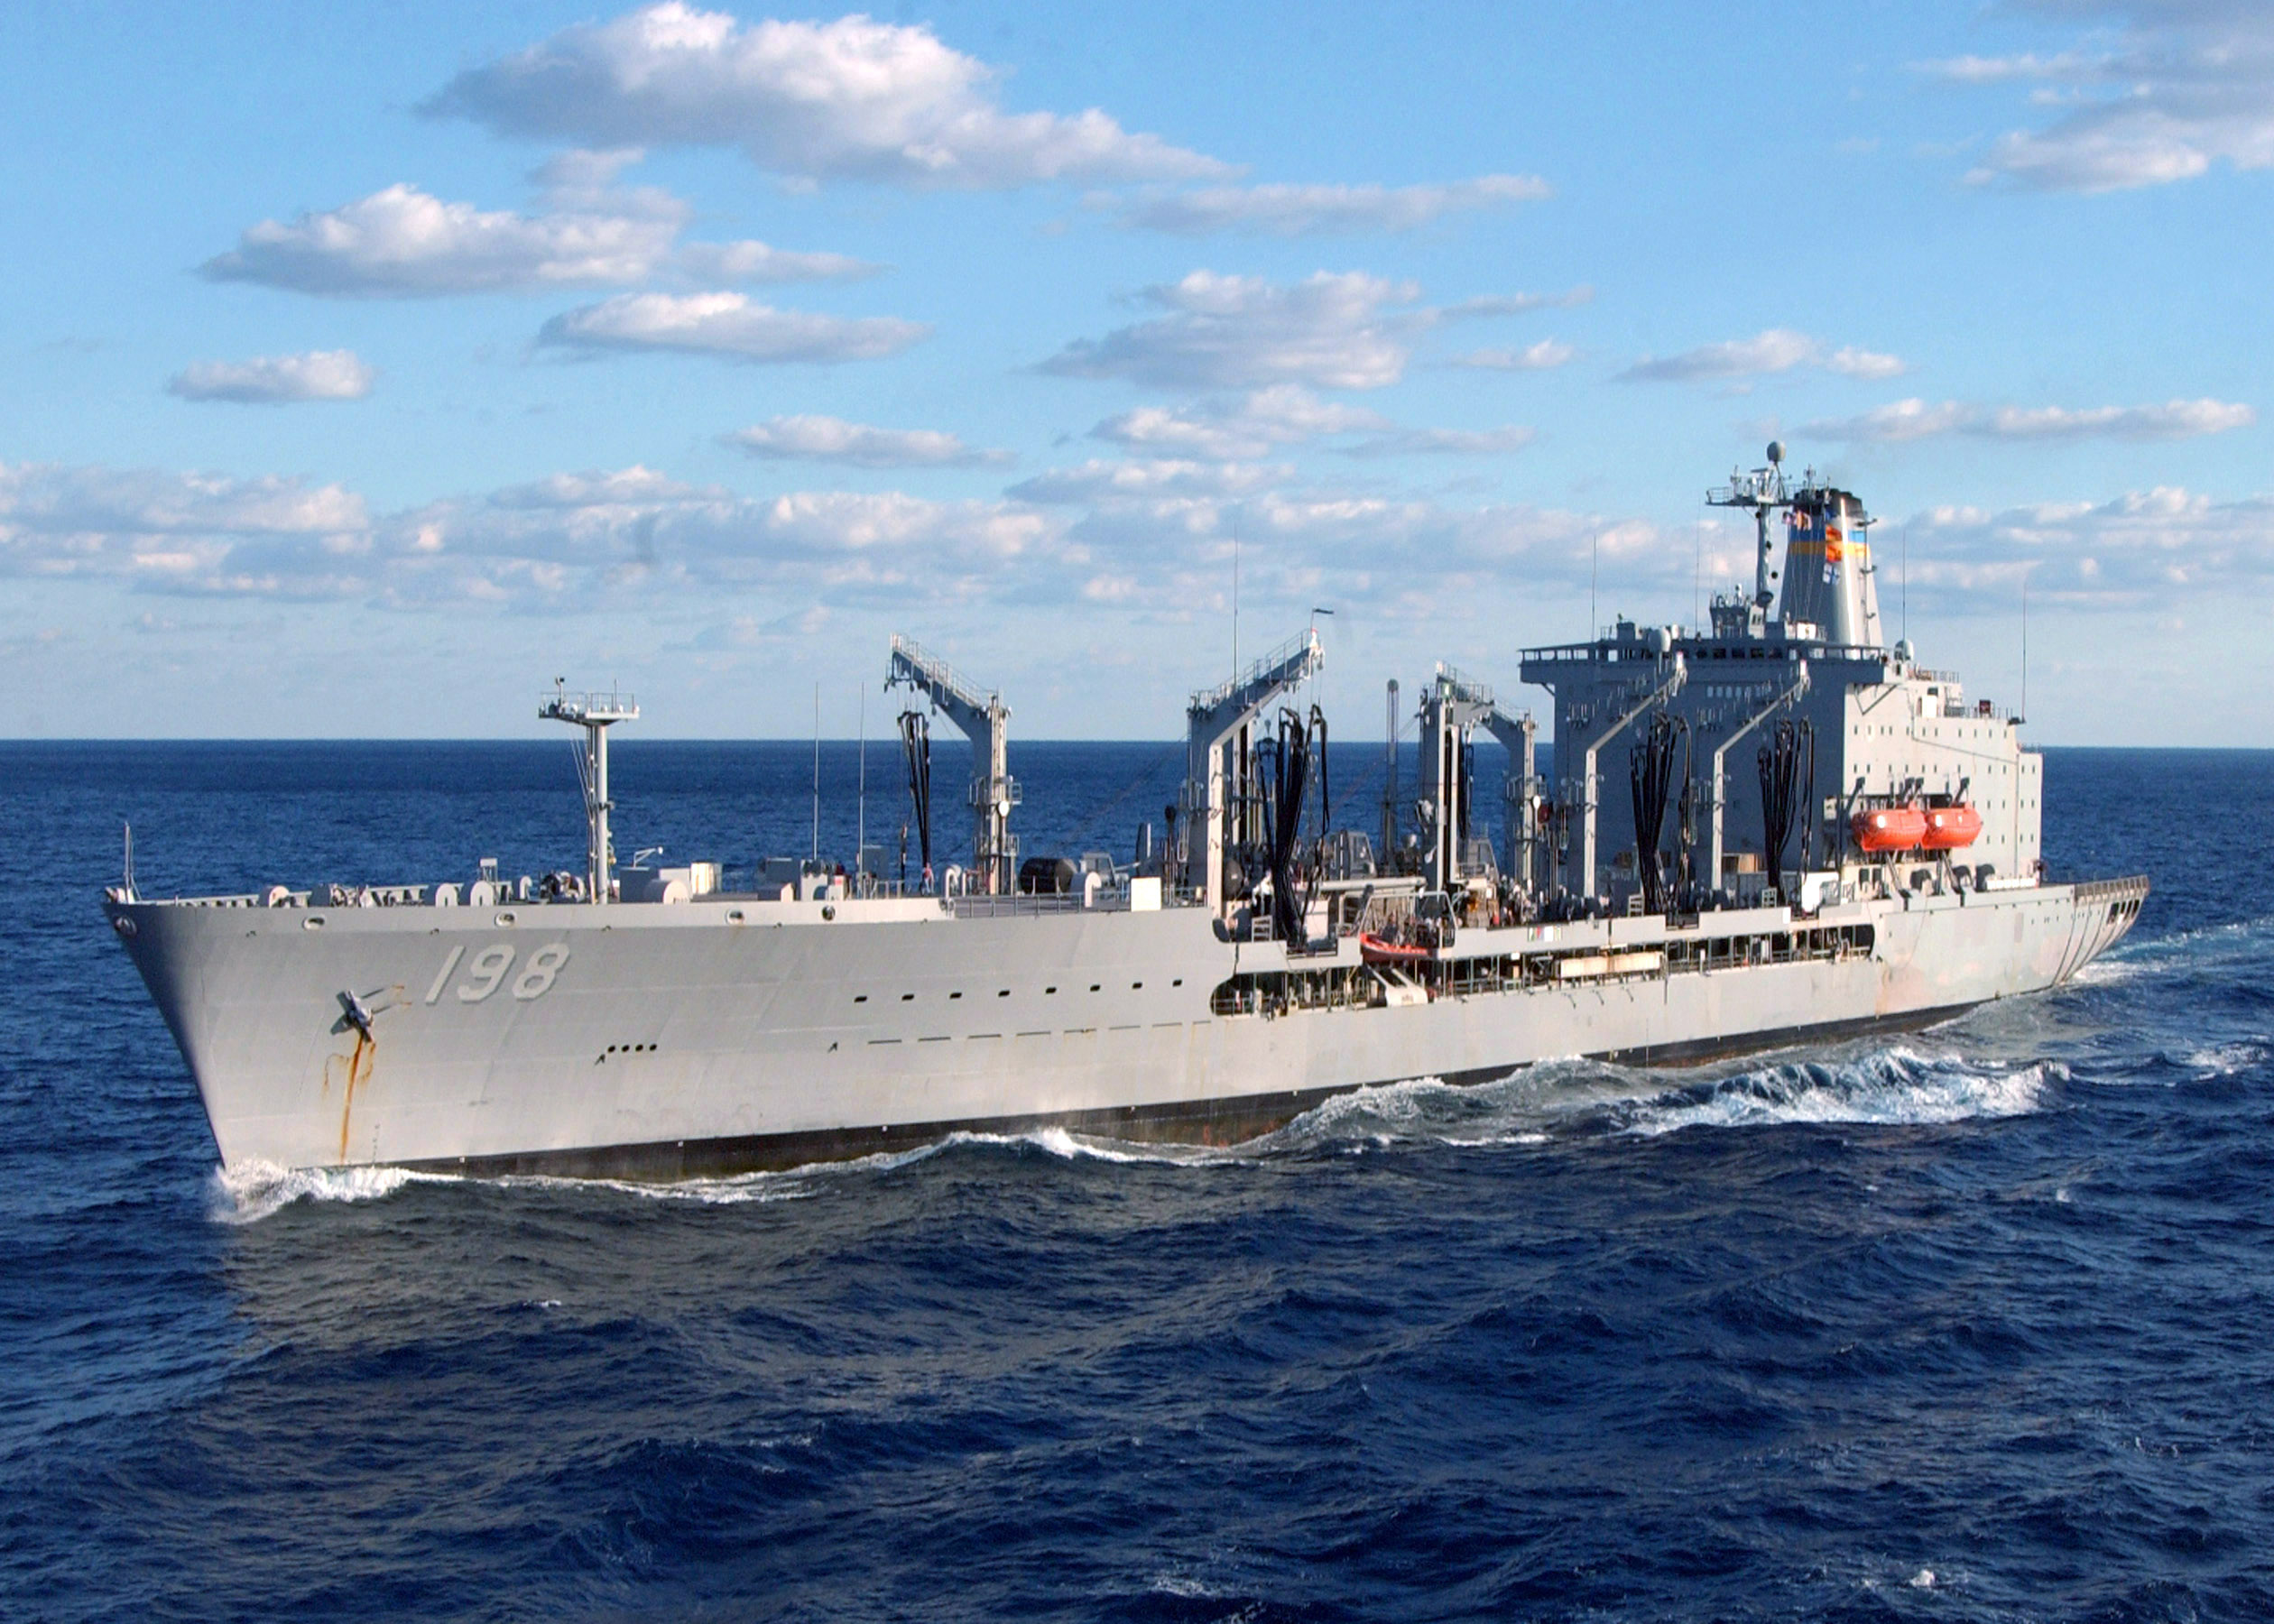 List of museum ships of the United States military